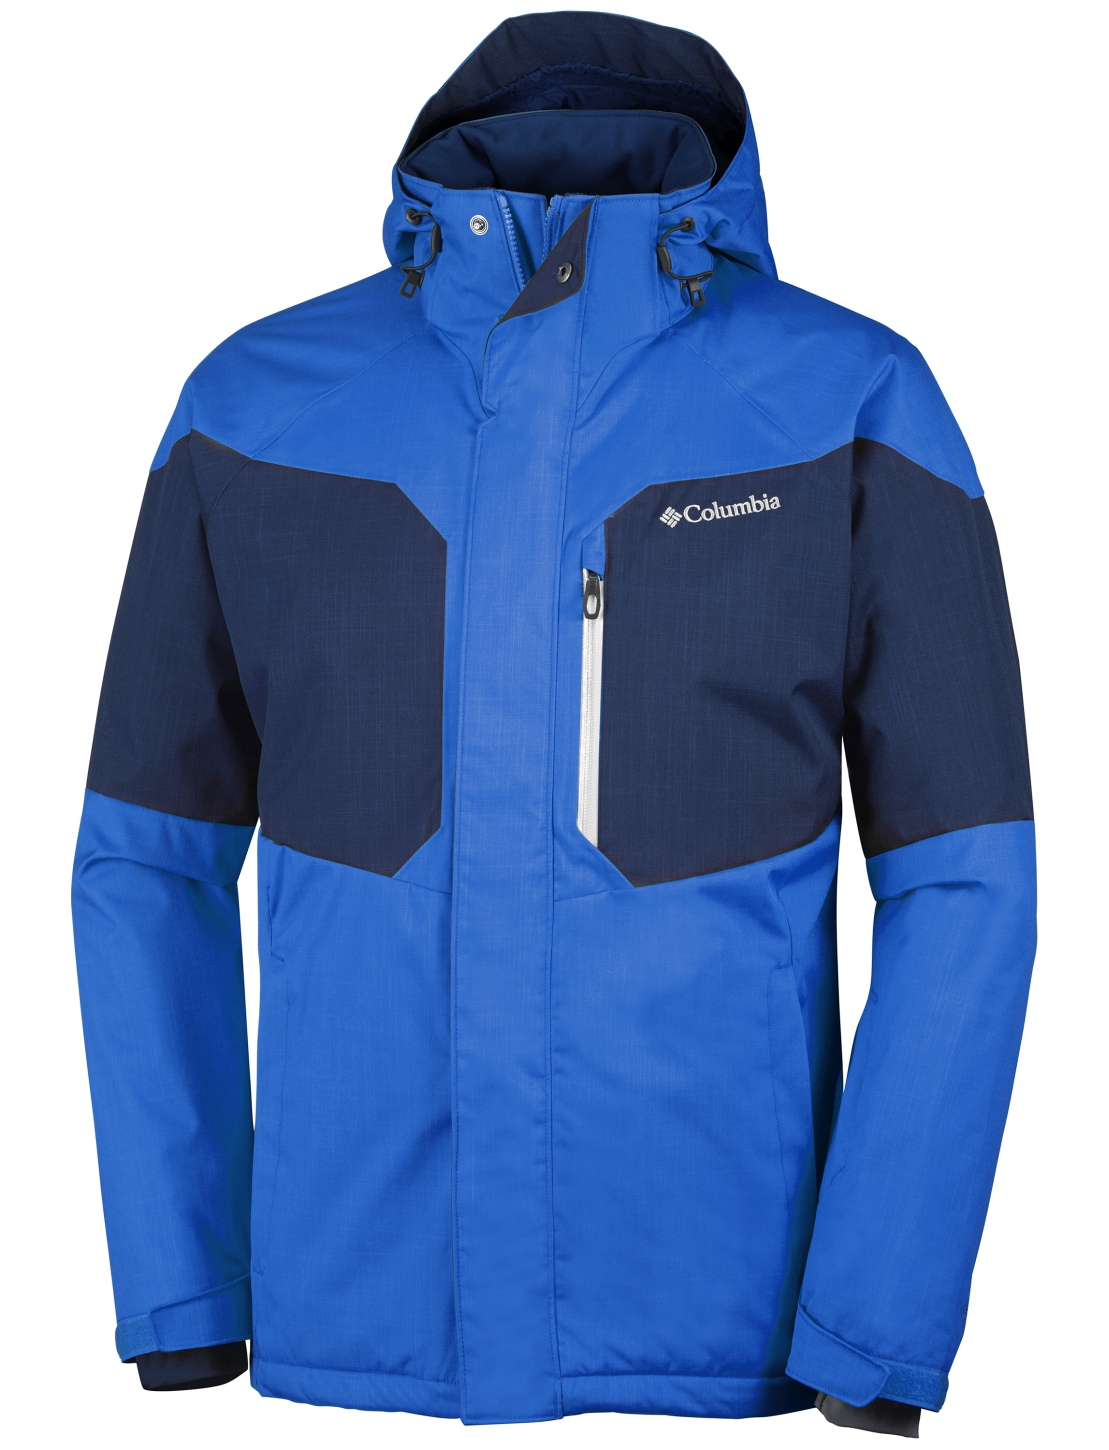 Columbia Men's Alpine Action Ski Jacket Super Blue, Collegiate Navy-30